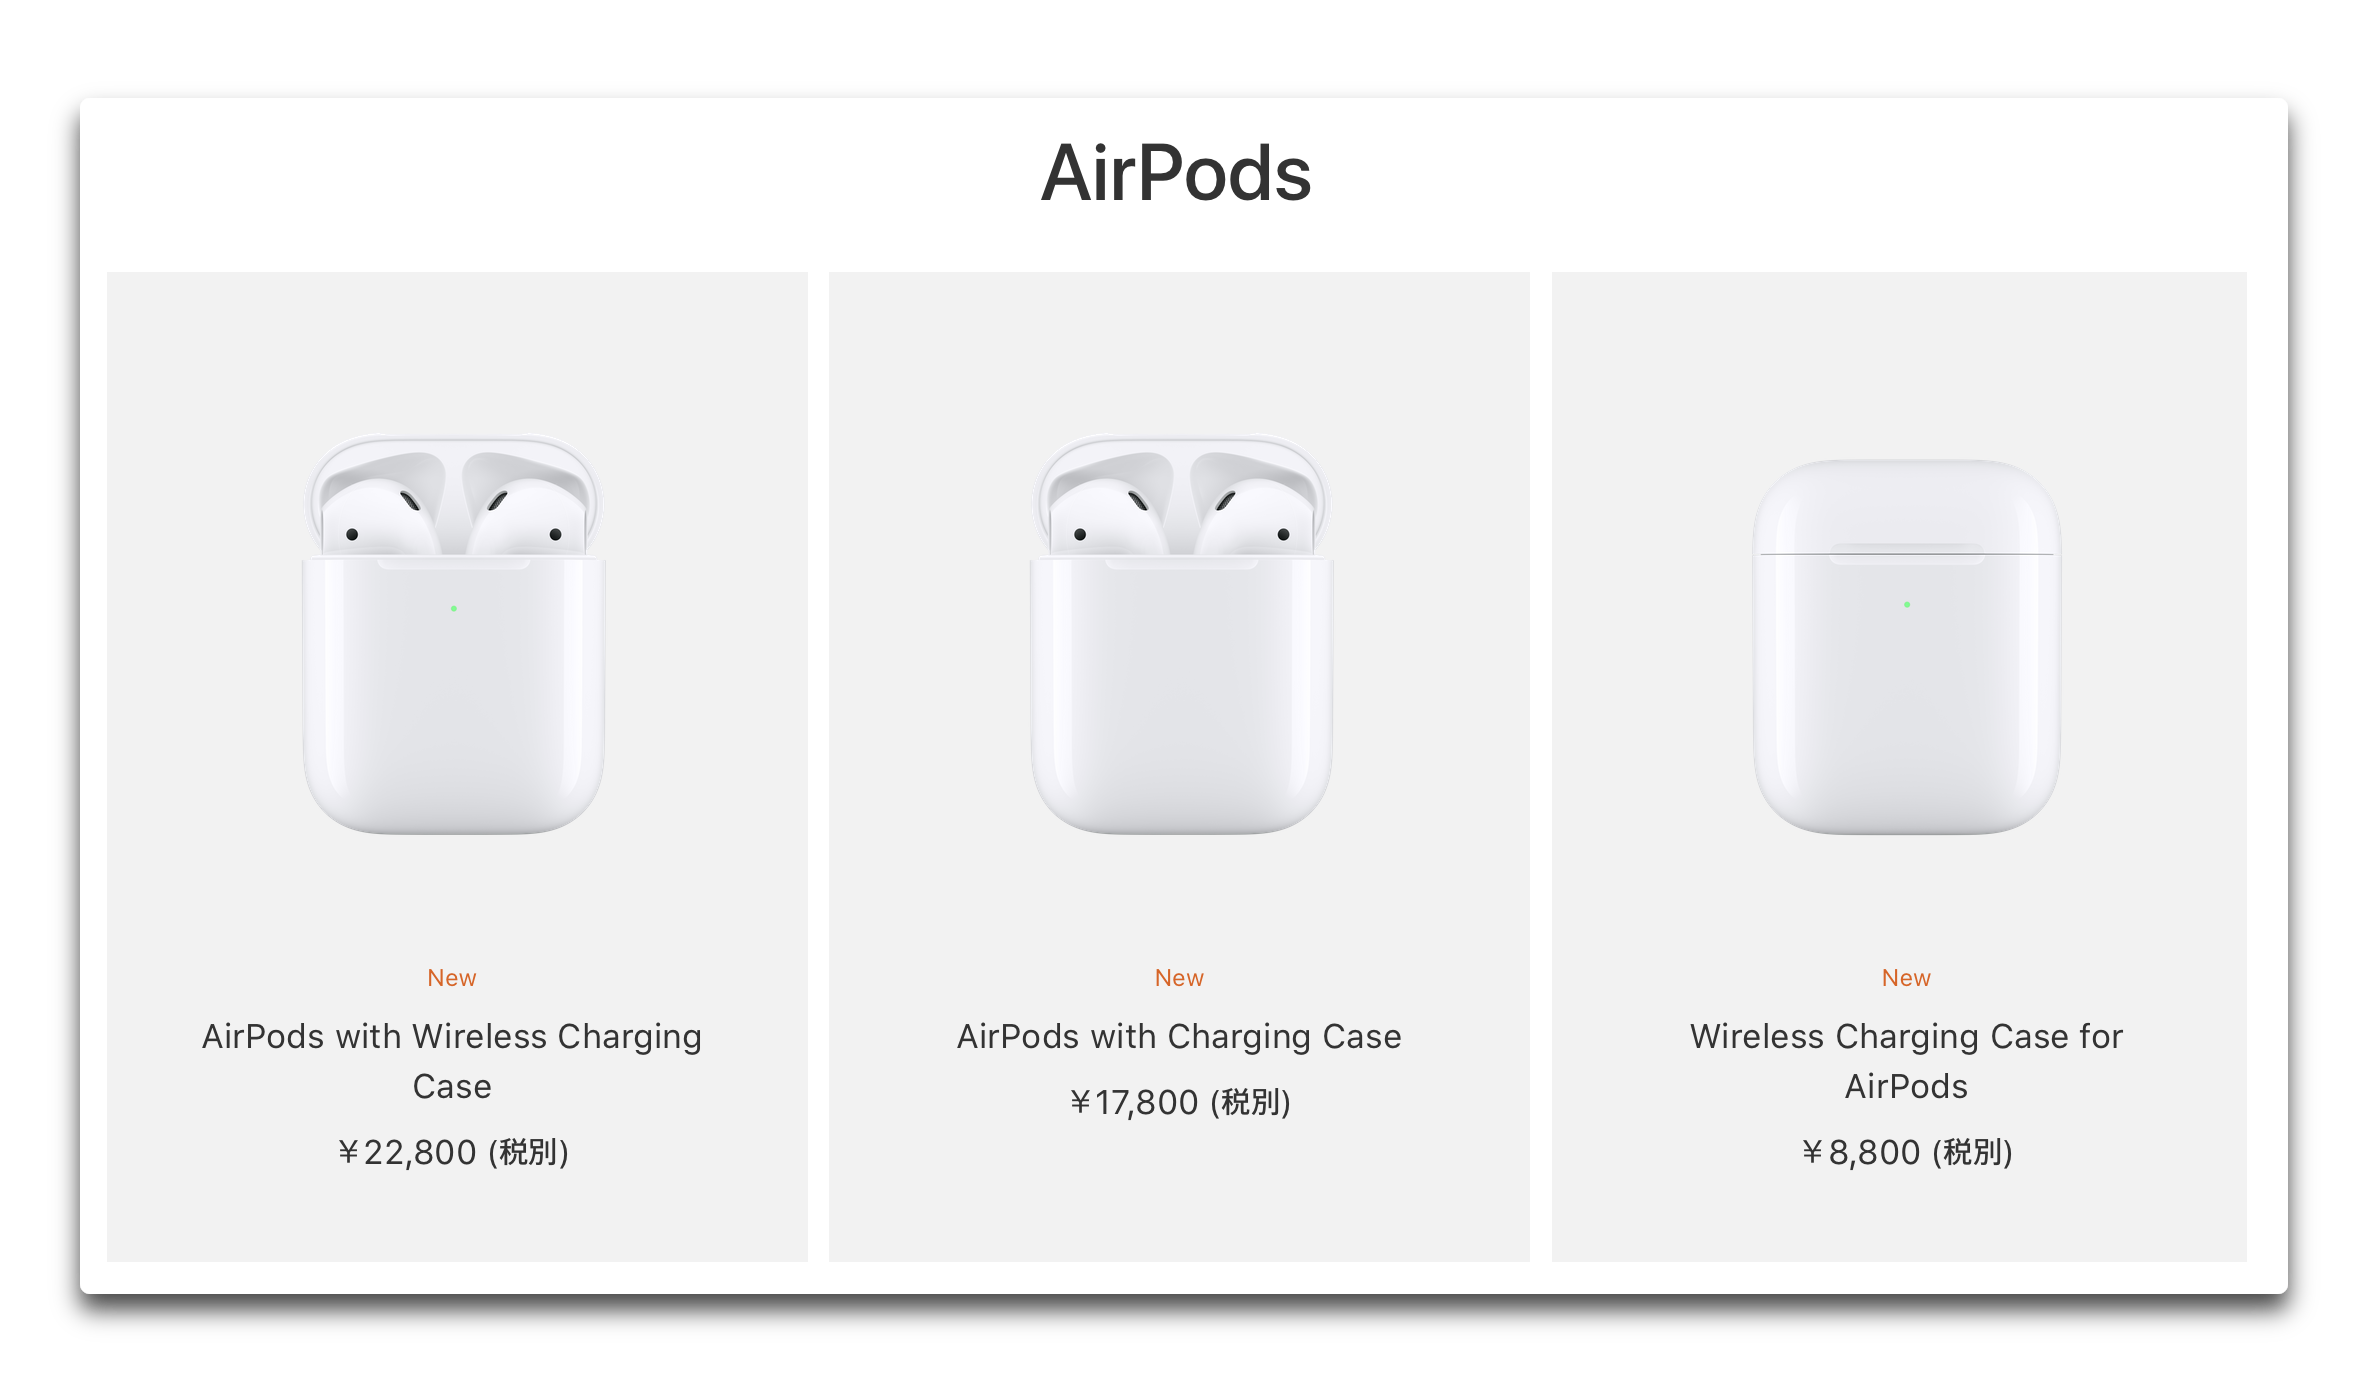 Apple、「AirPods with Wireless Charging Case」「AirPods with Charging Case」「Wireless Charging Case for AirPods」を発表